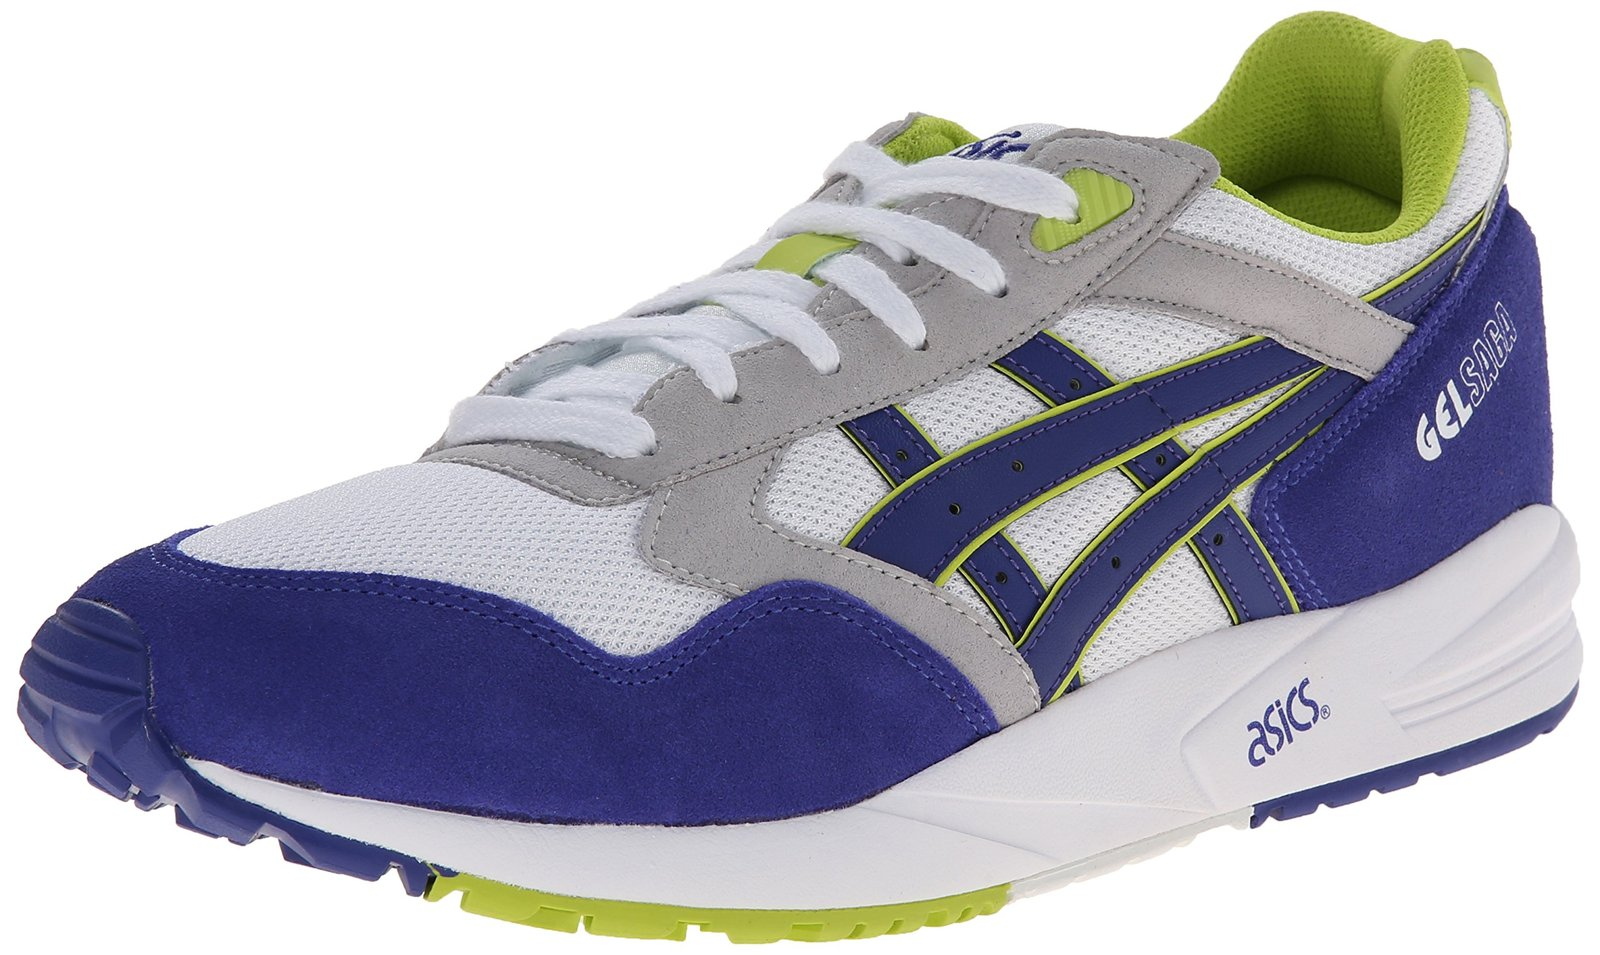 ASICS Gel-saga Retro Running Shoe, White/Dark Blue, 5.5 M US